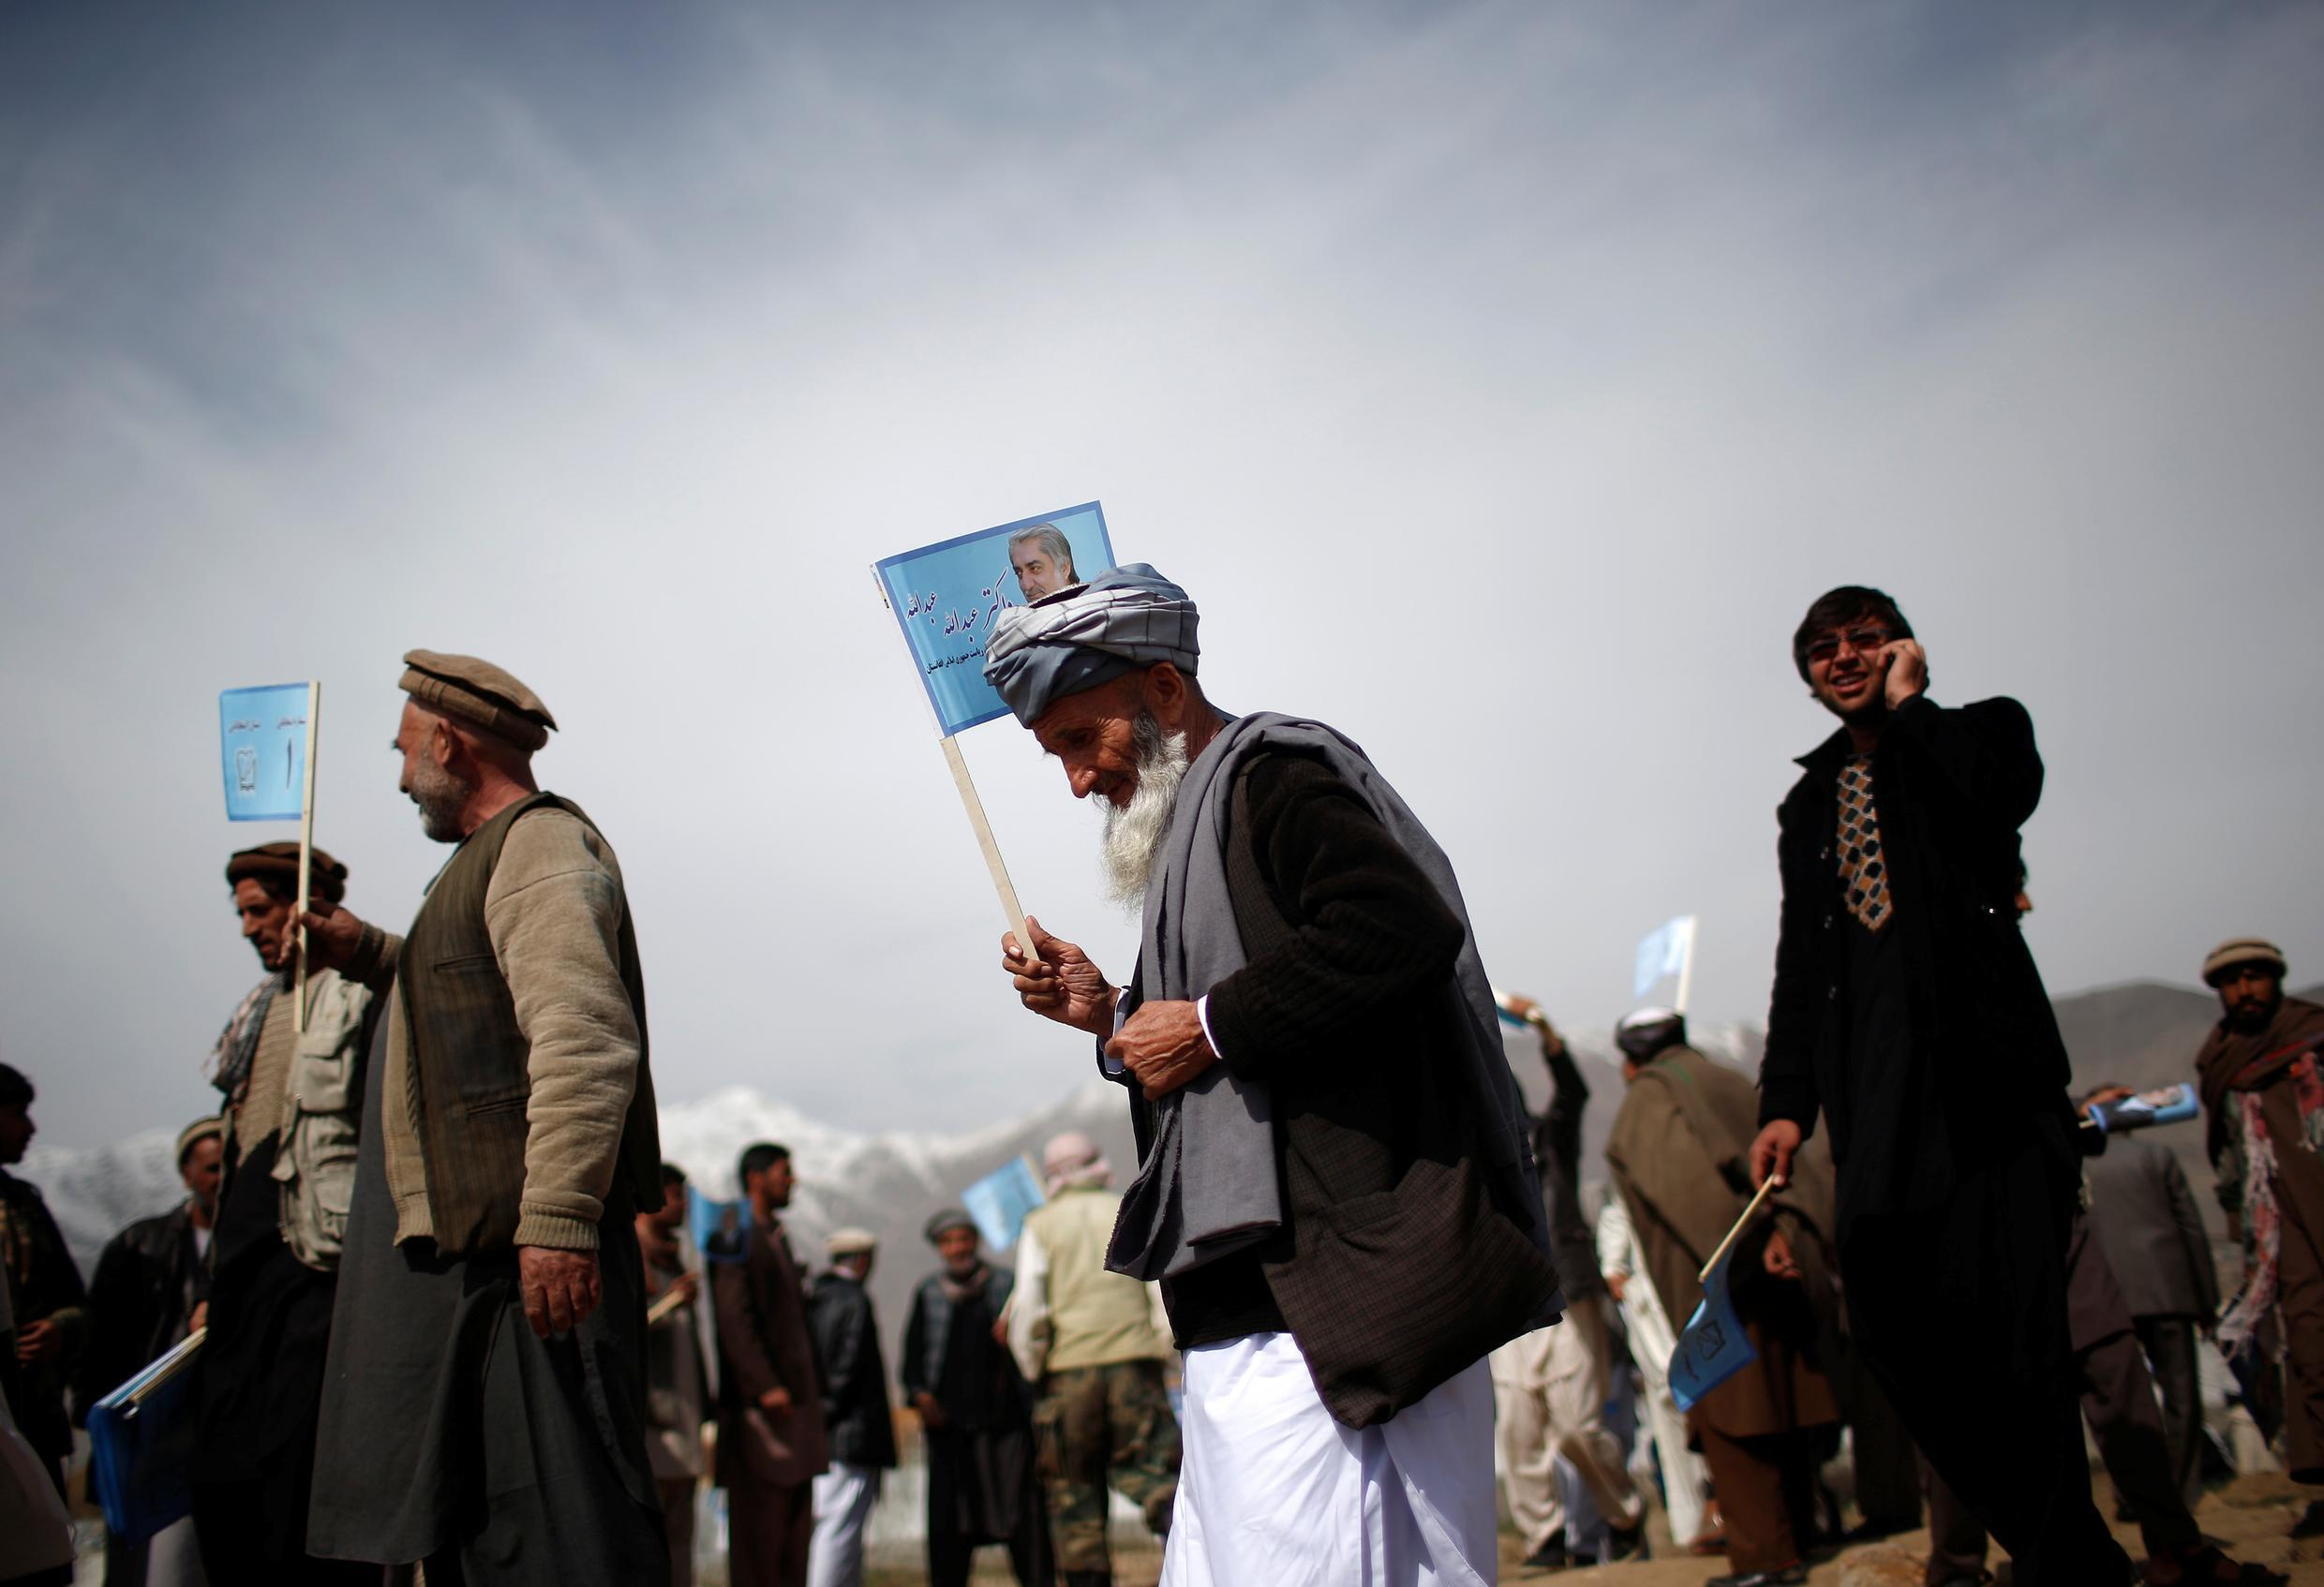 Dossier: Afghanistan presidential election 2014